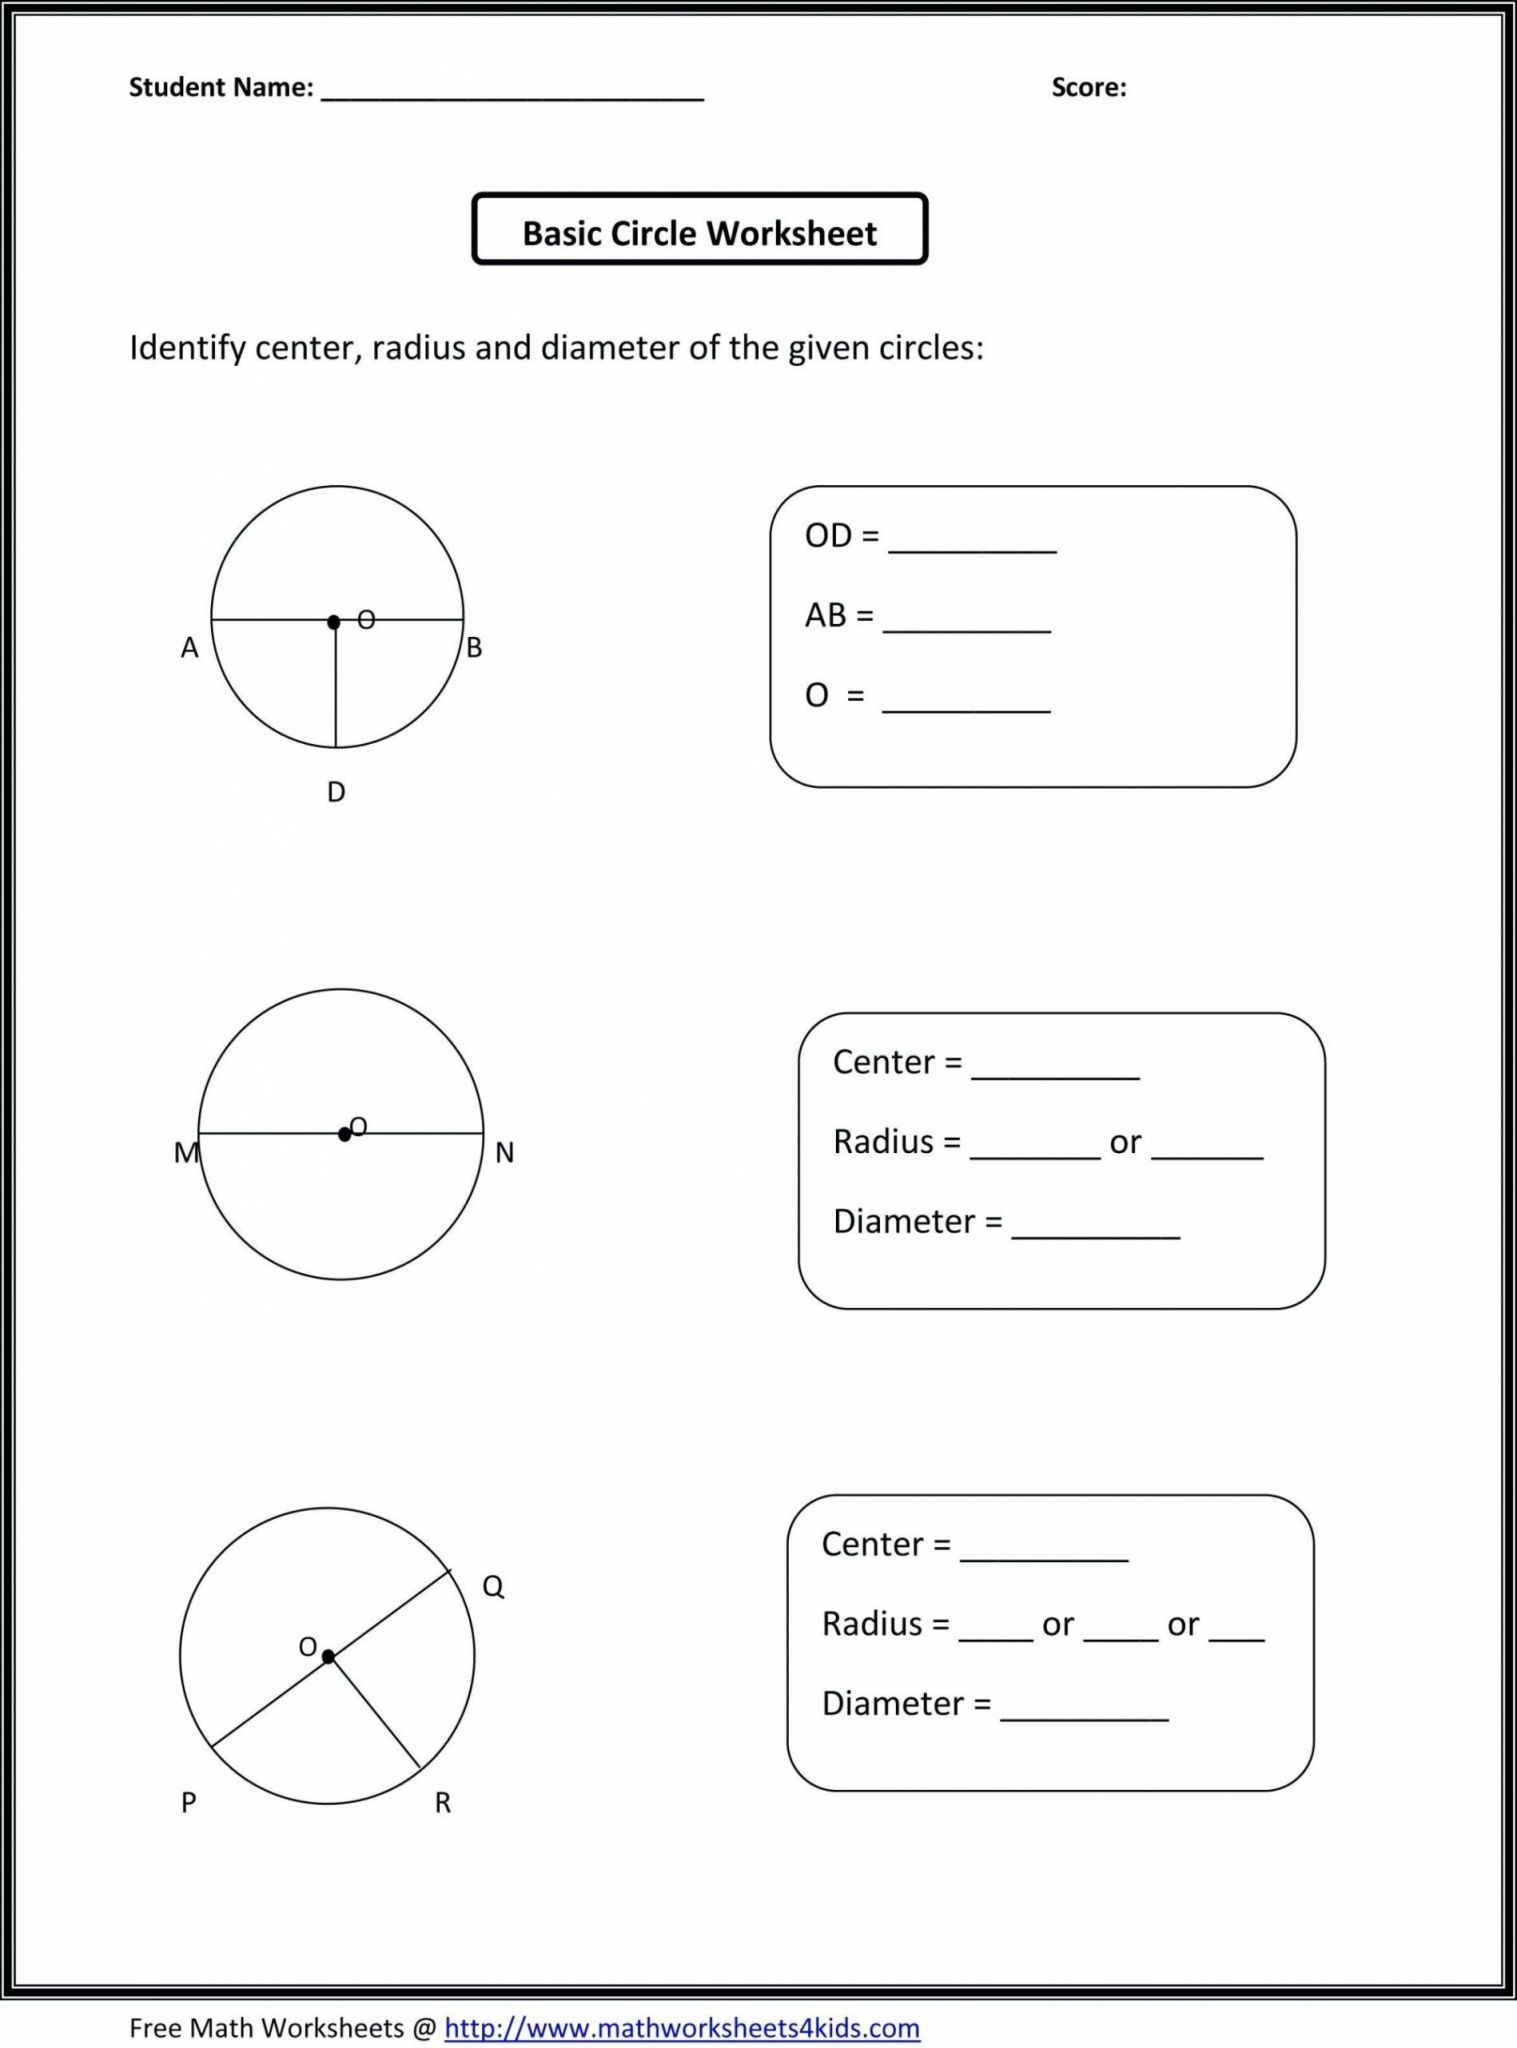 Osmosis Jones Video Worksheet Answers